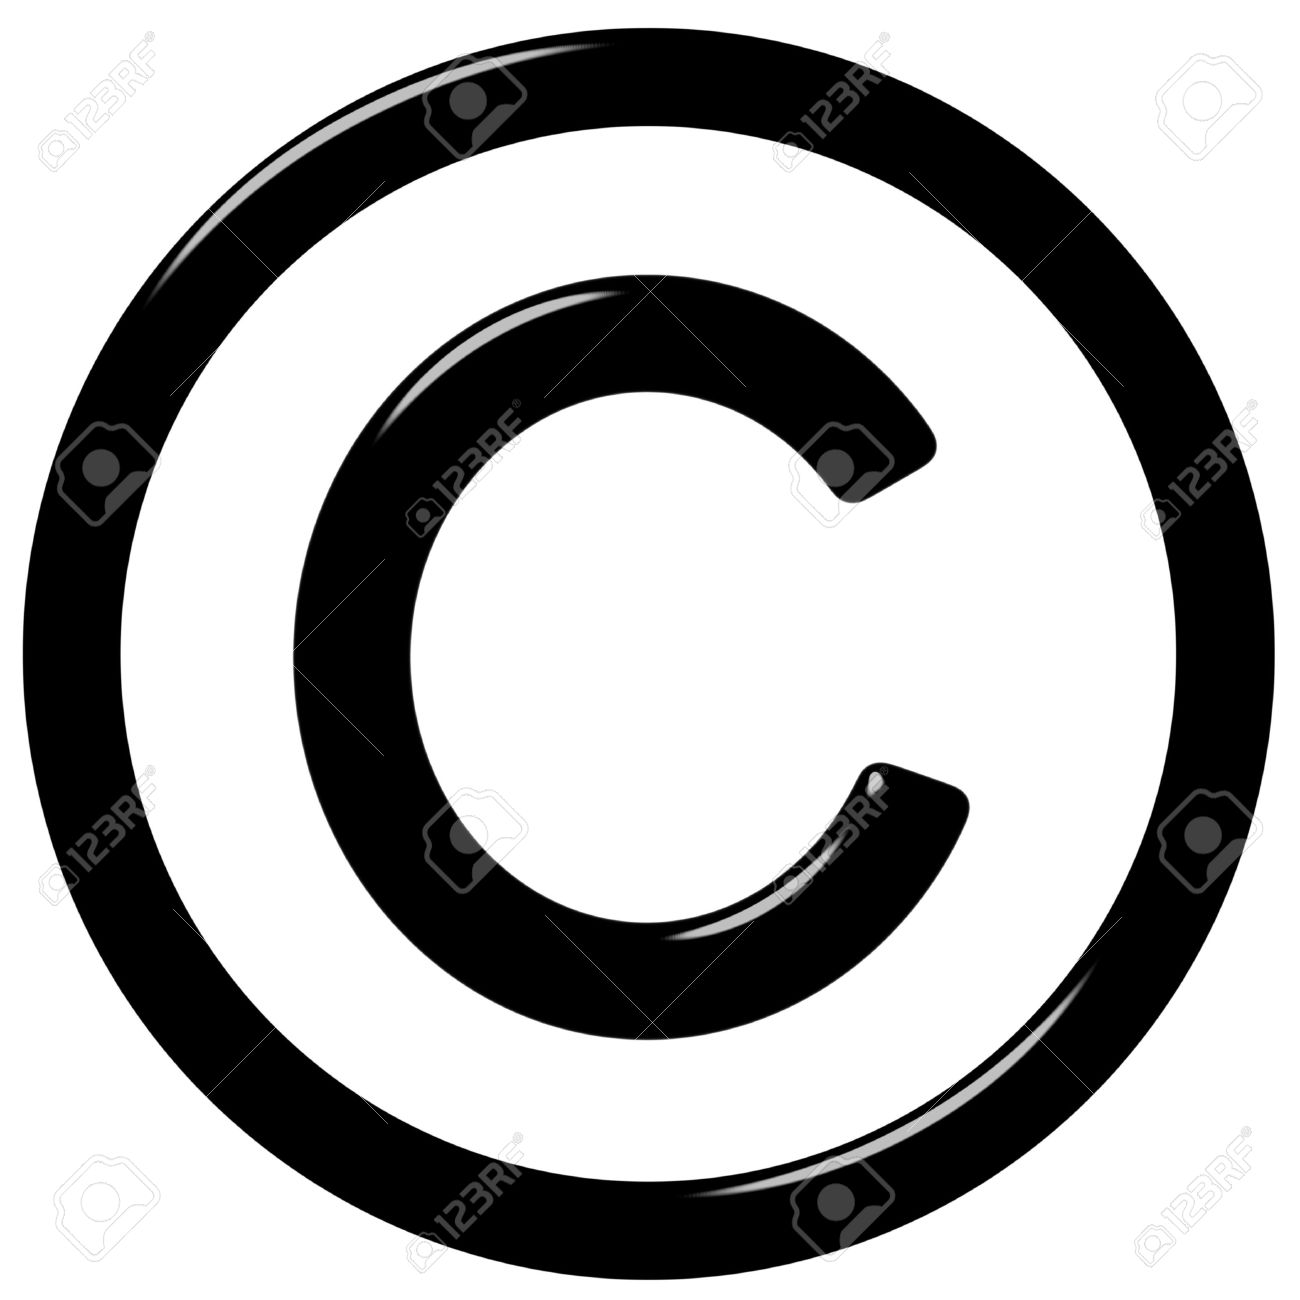 3d Copyright Symbol Stock Photo Picture And Royalty Free Image